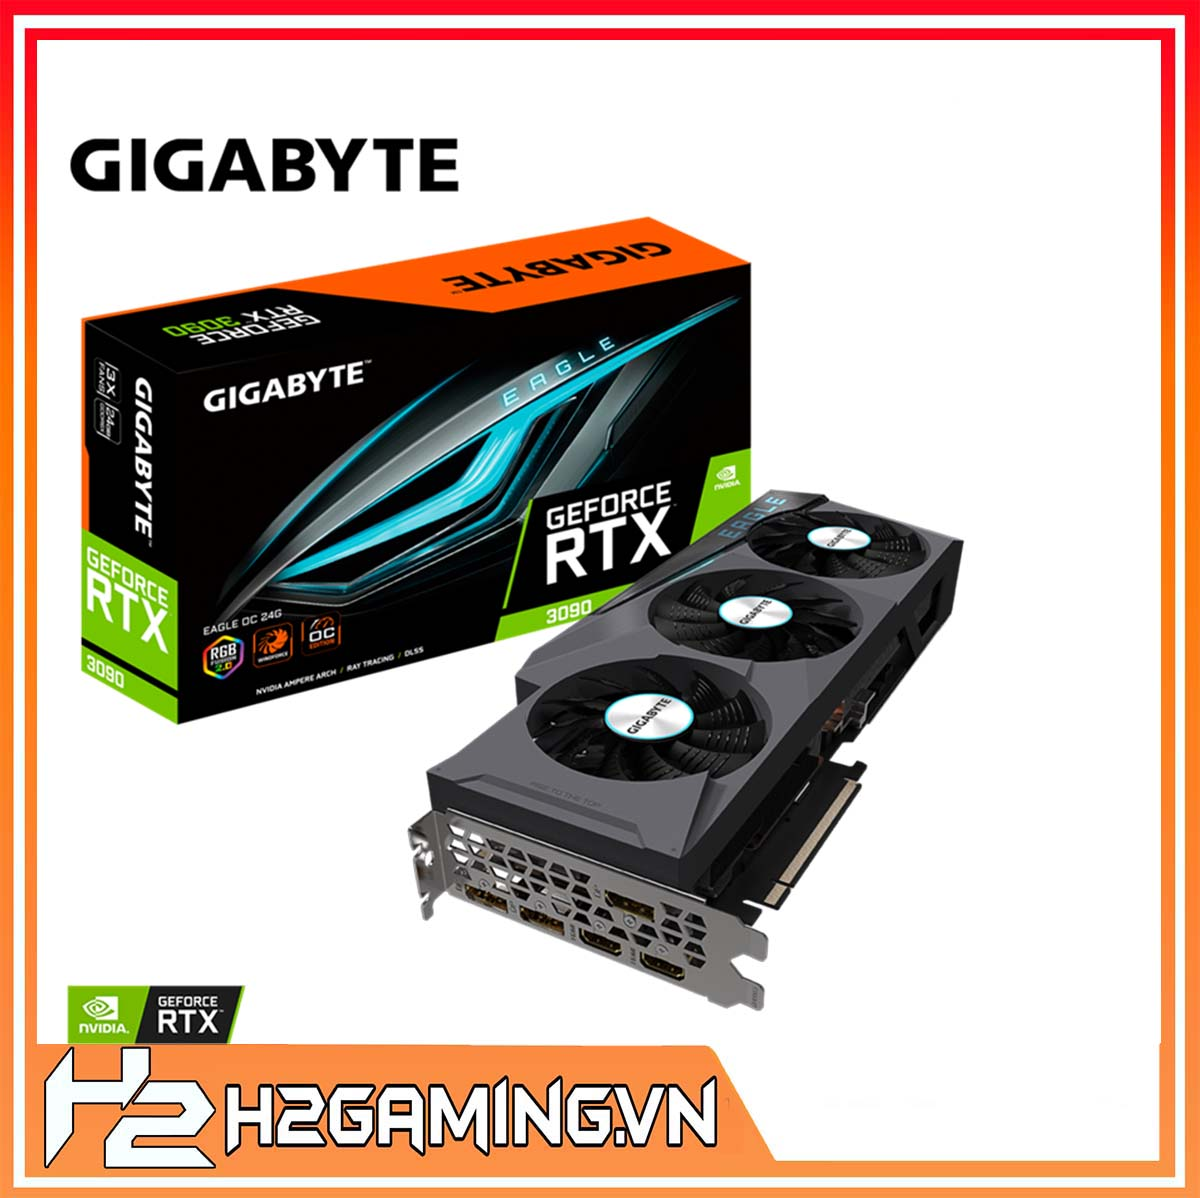 VGA_GIGABYTE_GeForce_RTX_3090_EAGLE_OC_24G_(GV-N3090EAGLE_OC-24GD)